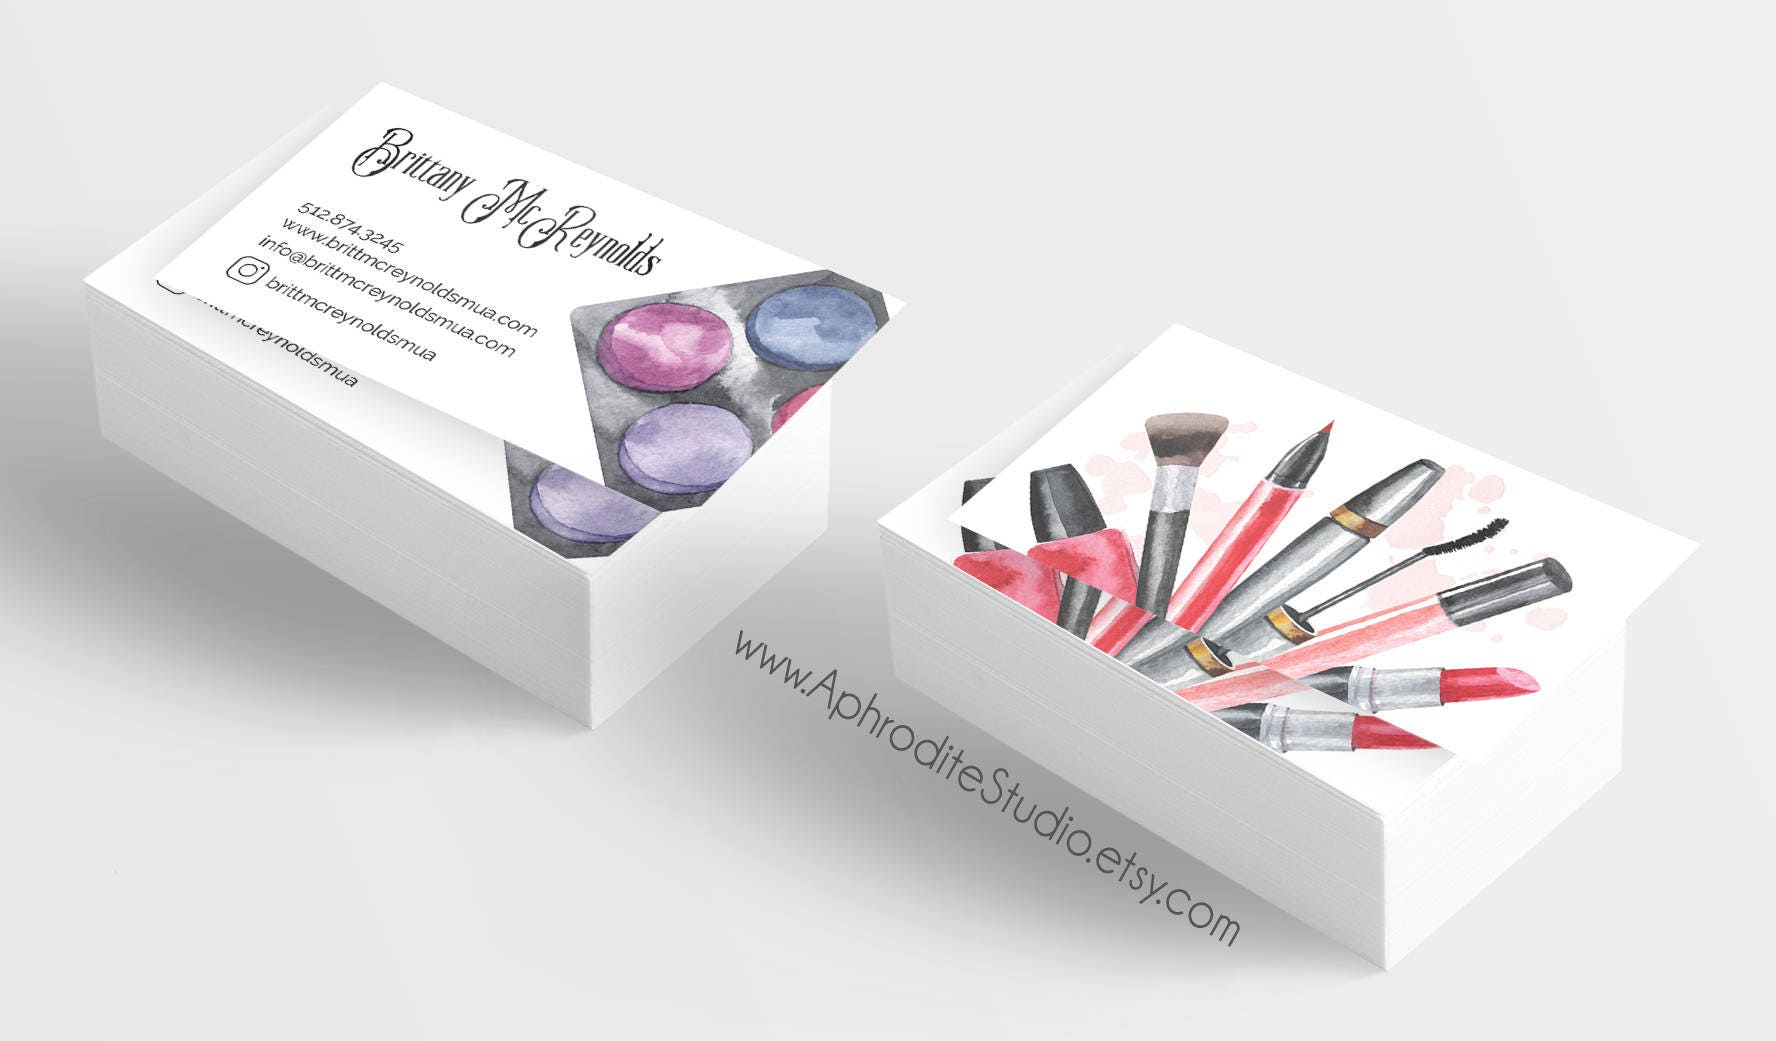 Make up artist business cards - Beautician business cards ...